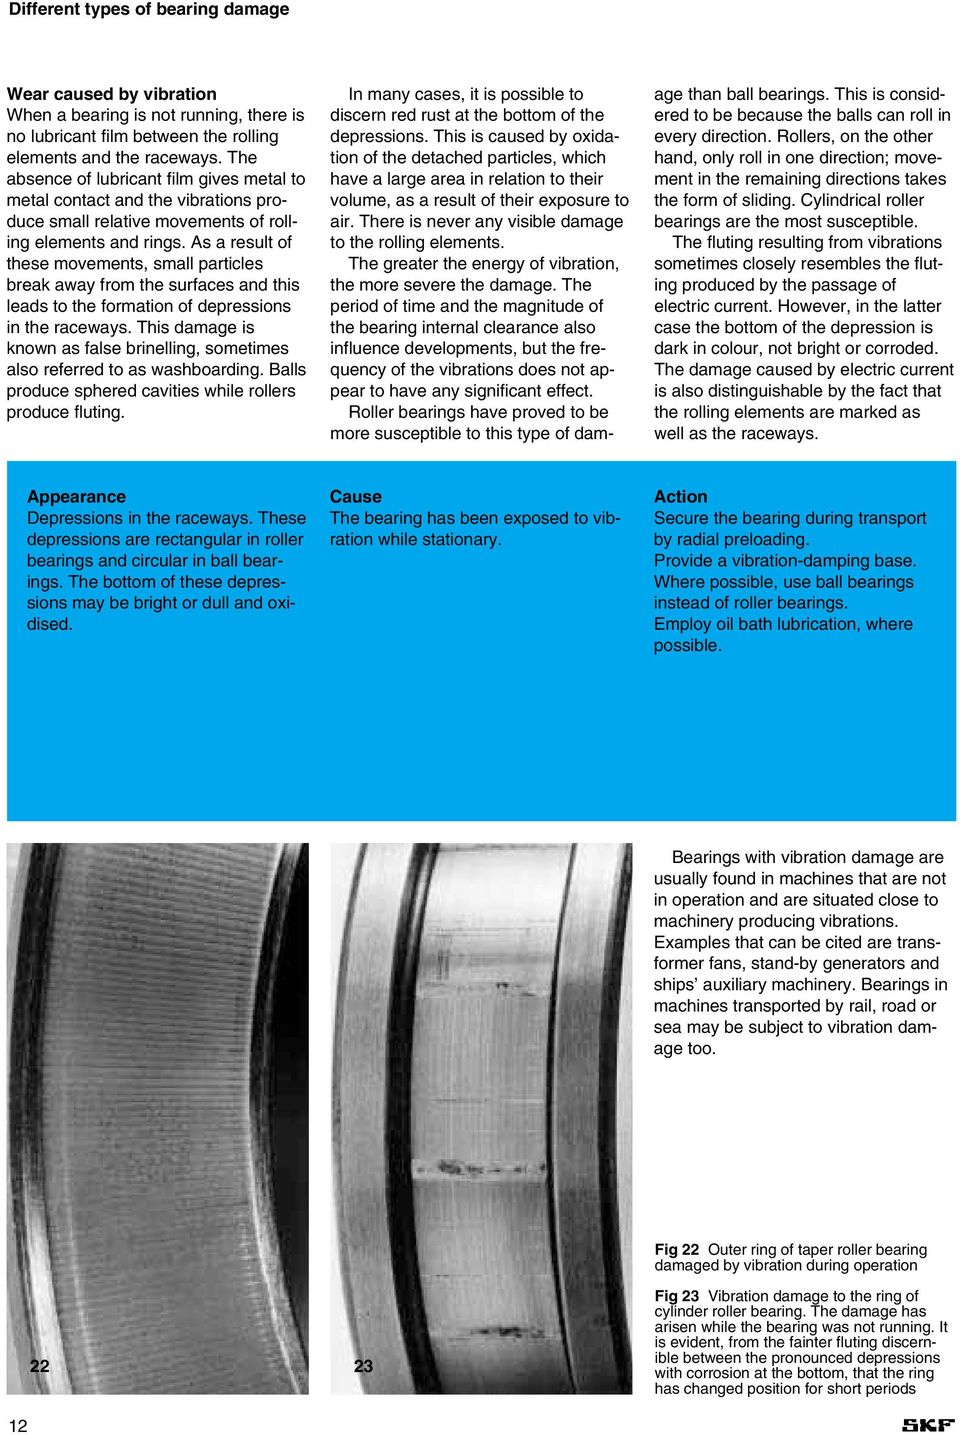 Product information 401  Bearing failures and their causes - PDF